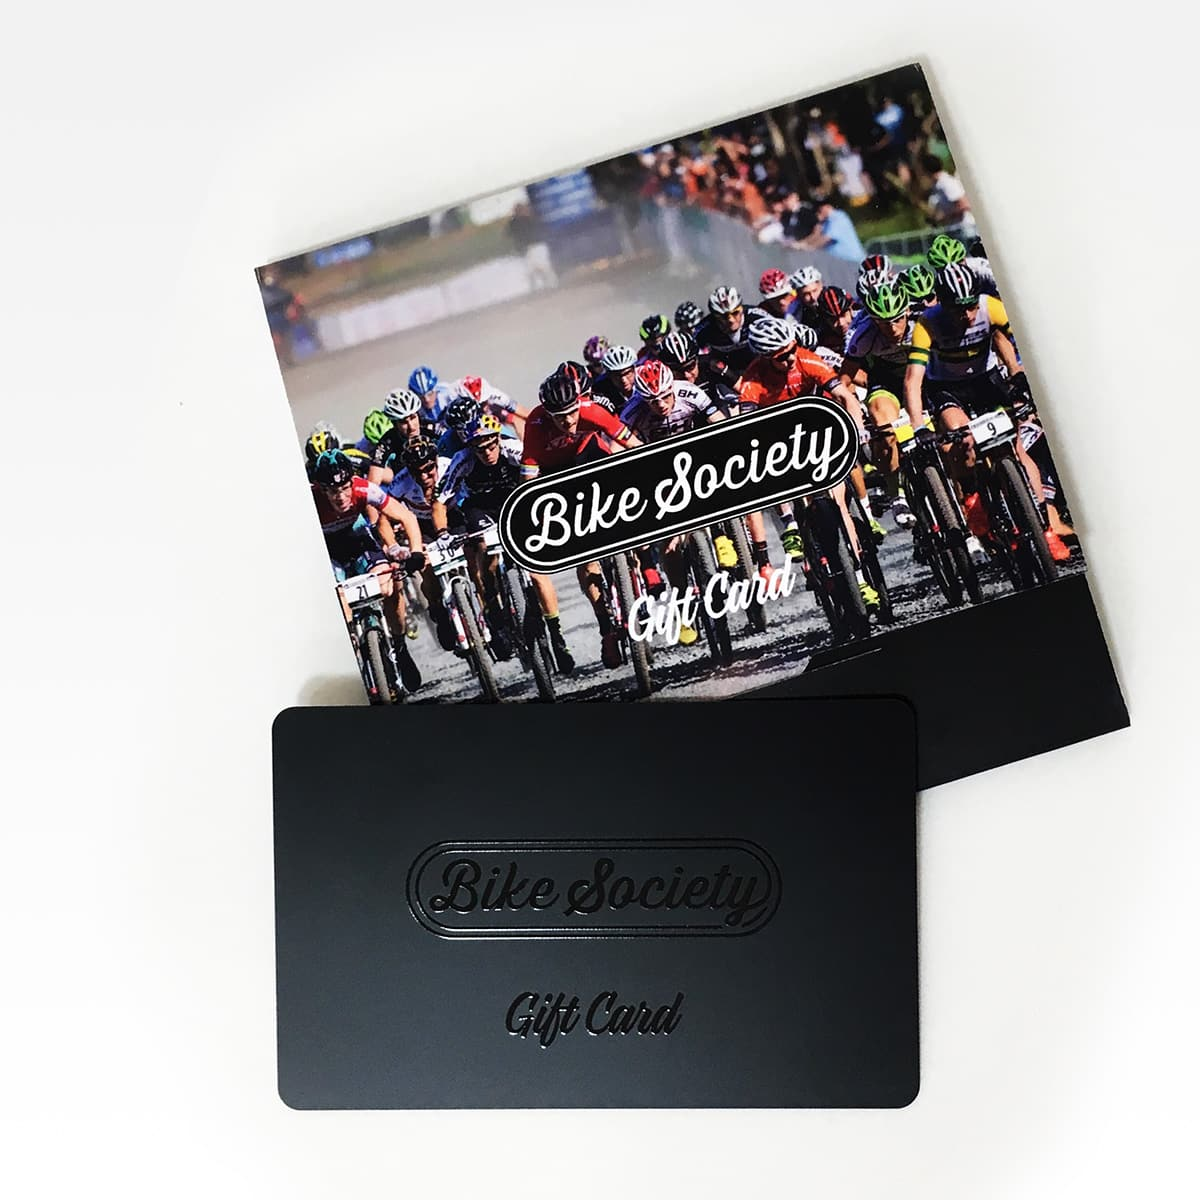 Gift Cards Online Australia Bike Society Bike Shop Adelaide Three Locations